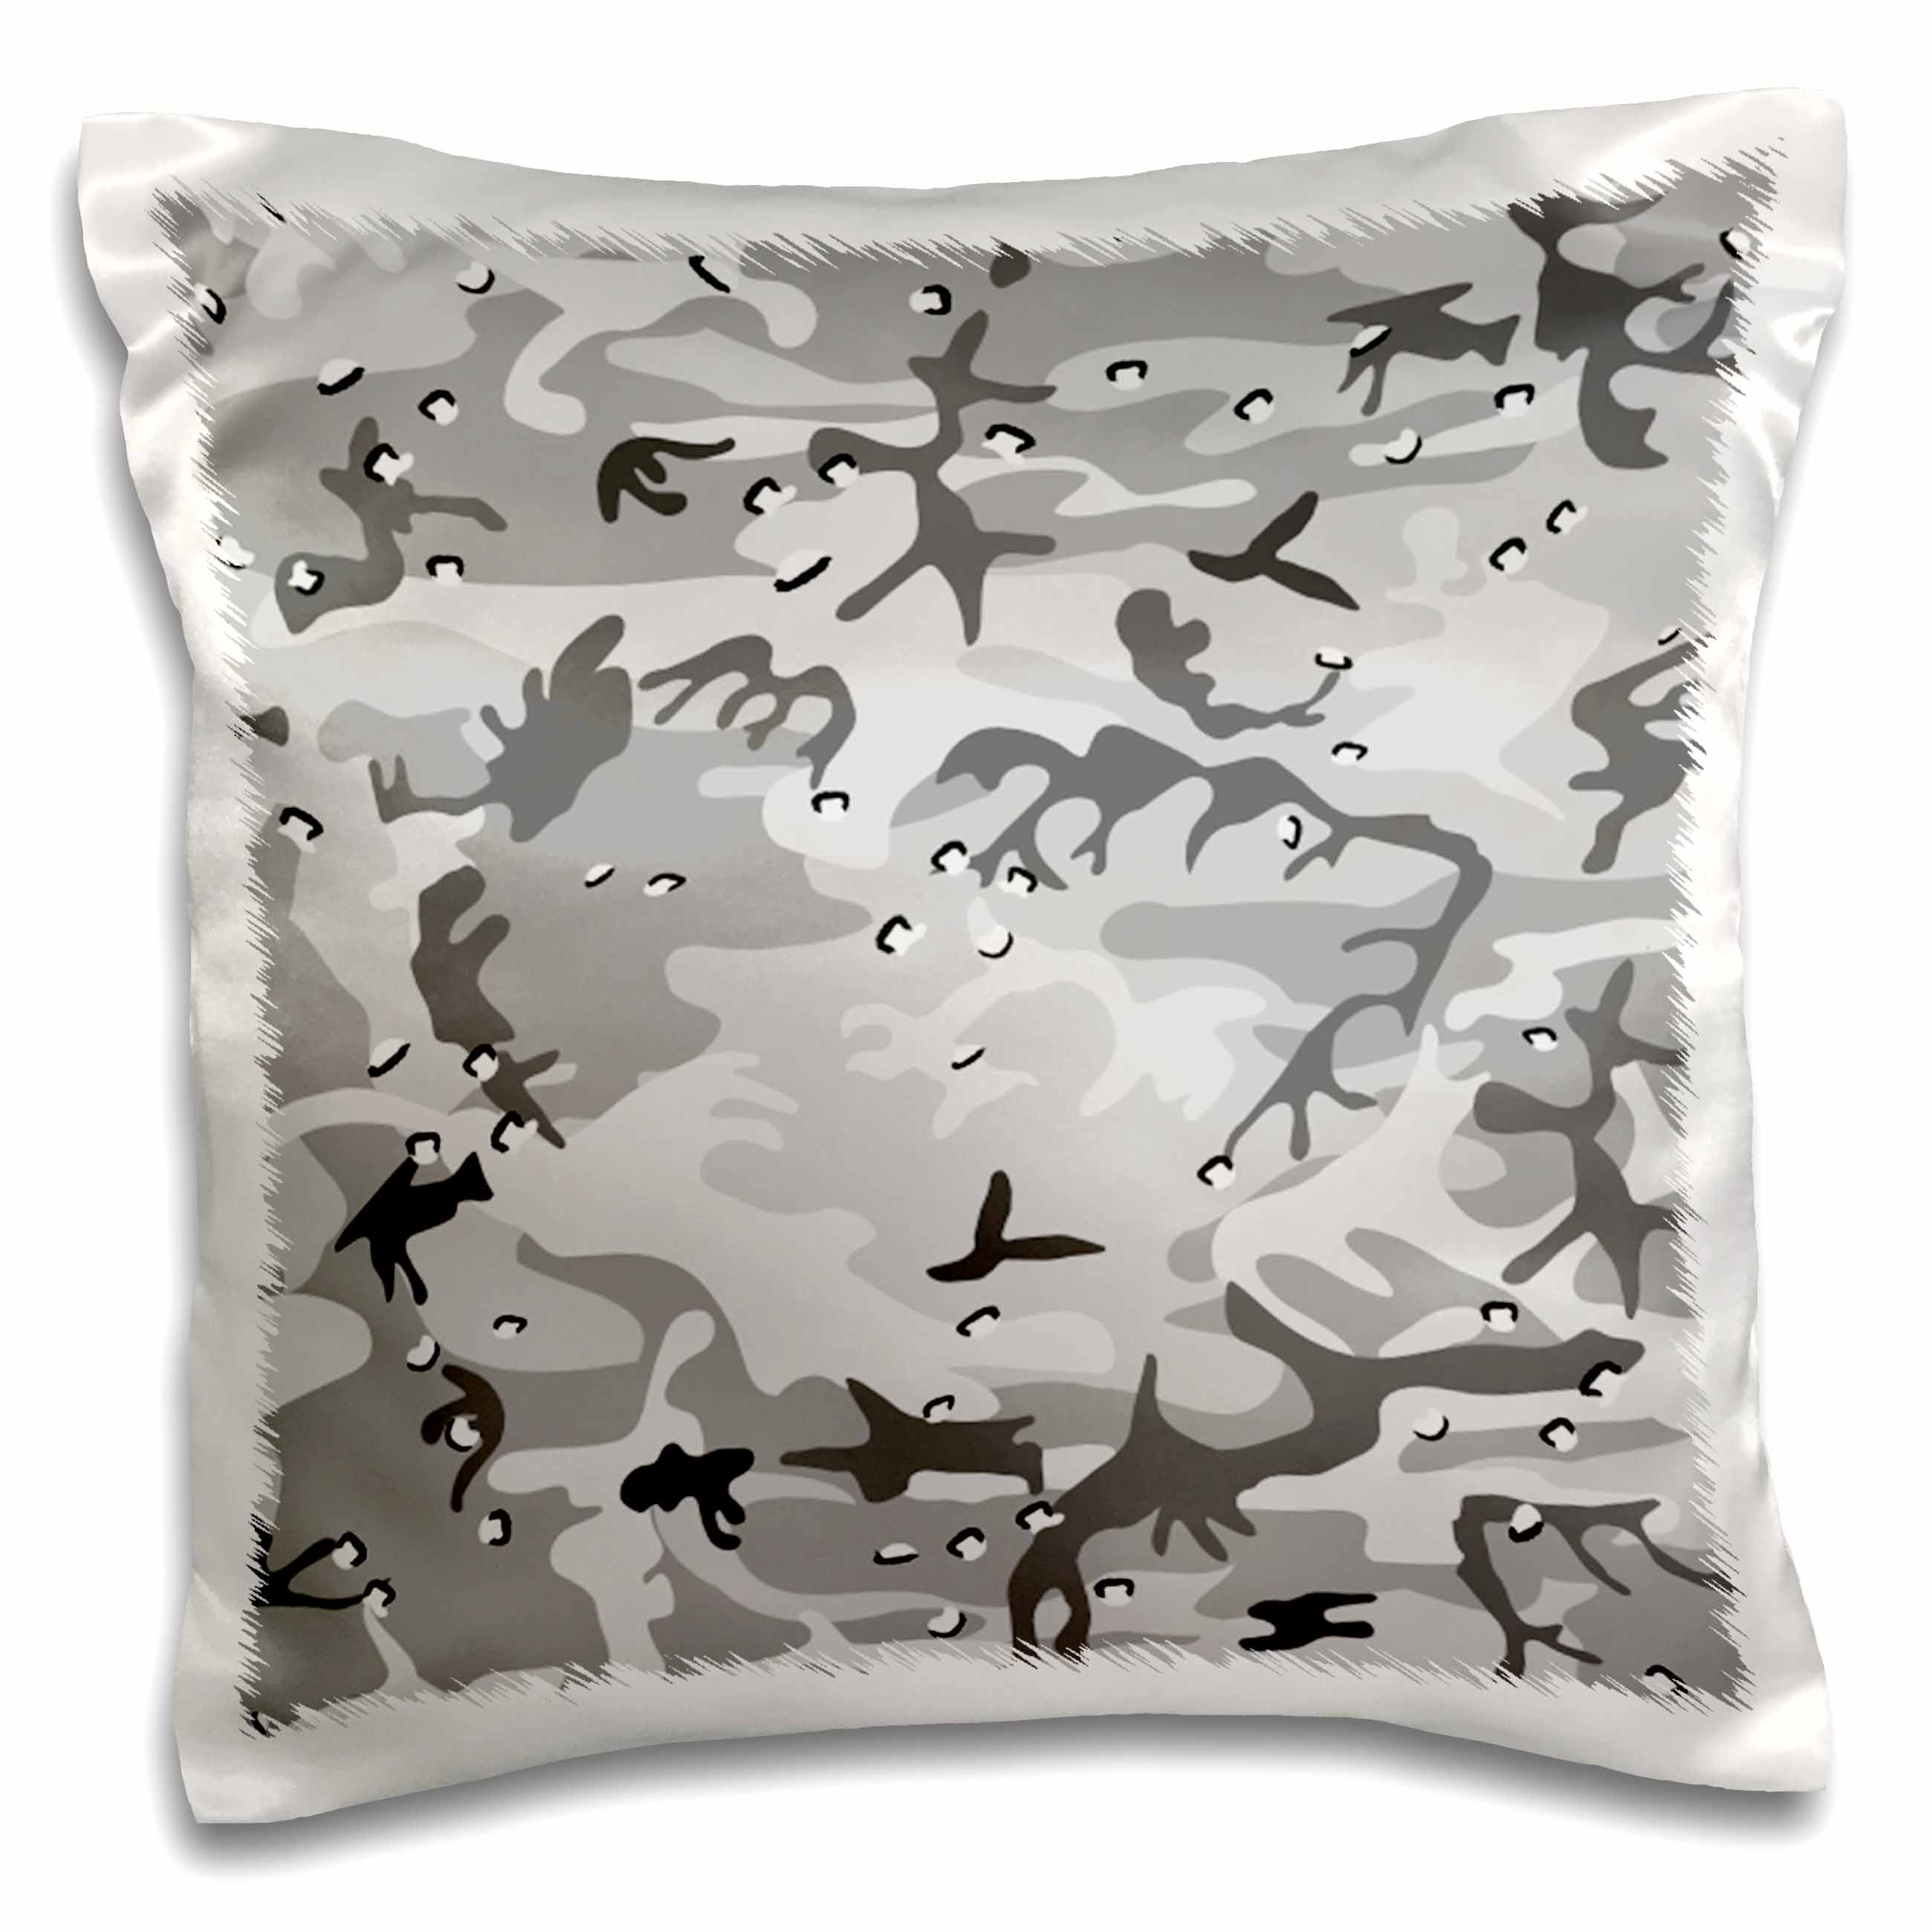 3dRose Winter Gray Camouflage Pattern, Pillow Case, 16 by 16-inch